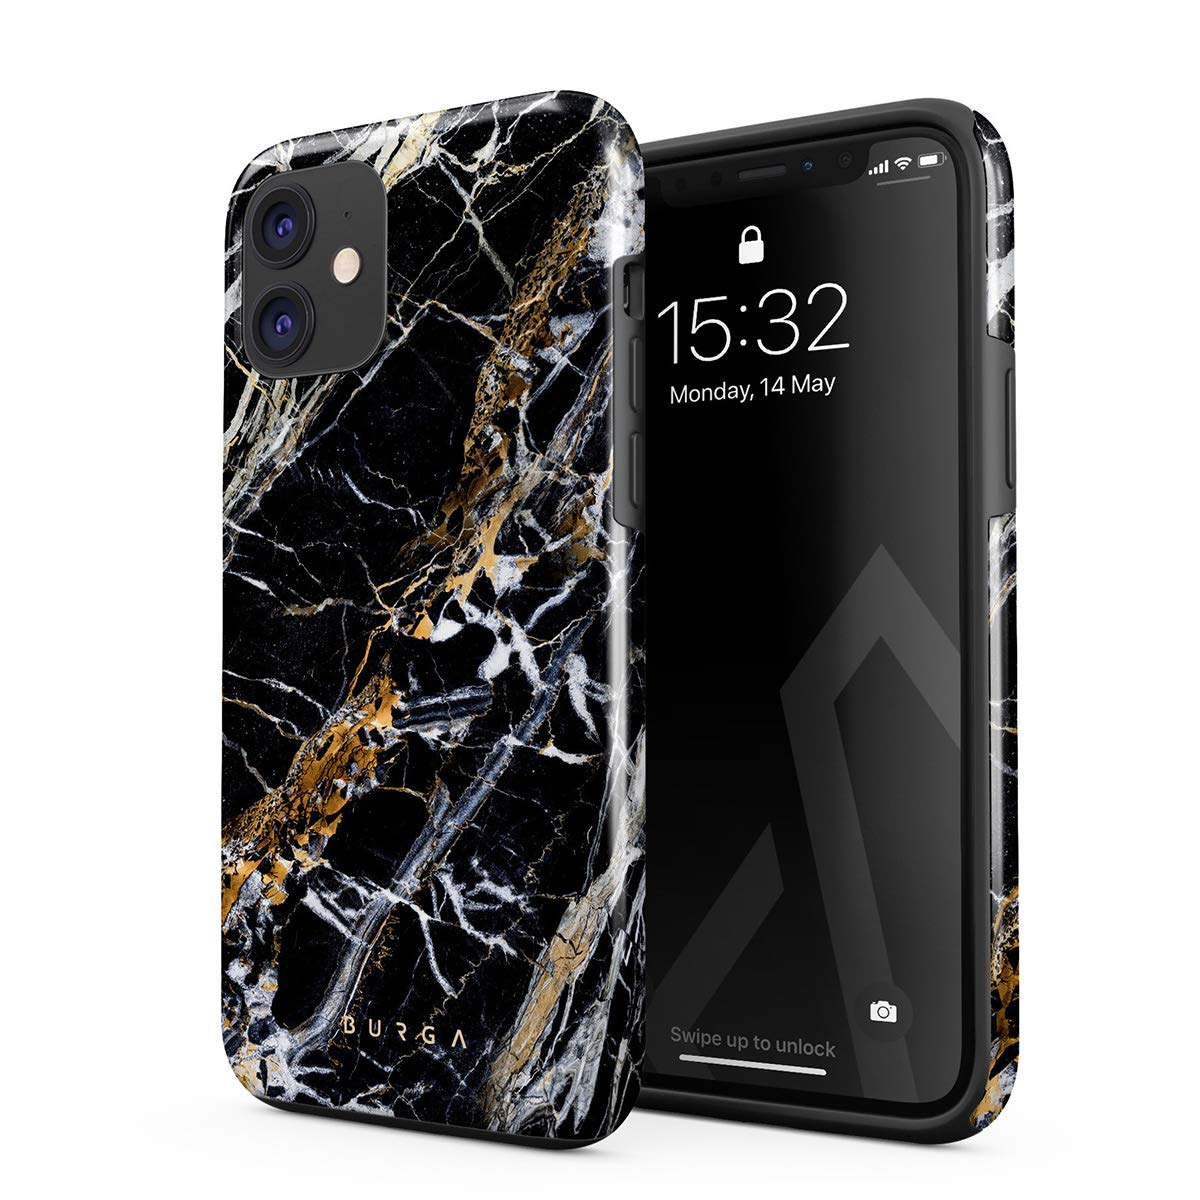 BURGA Phone Case Compatible with iPhone 11 - Black and Gold Onyx Marble Golden Stone Cute Case for Women Heavy Duty Shockproof Dual Layer Hard Shell + Silicone Protective Cover